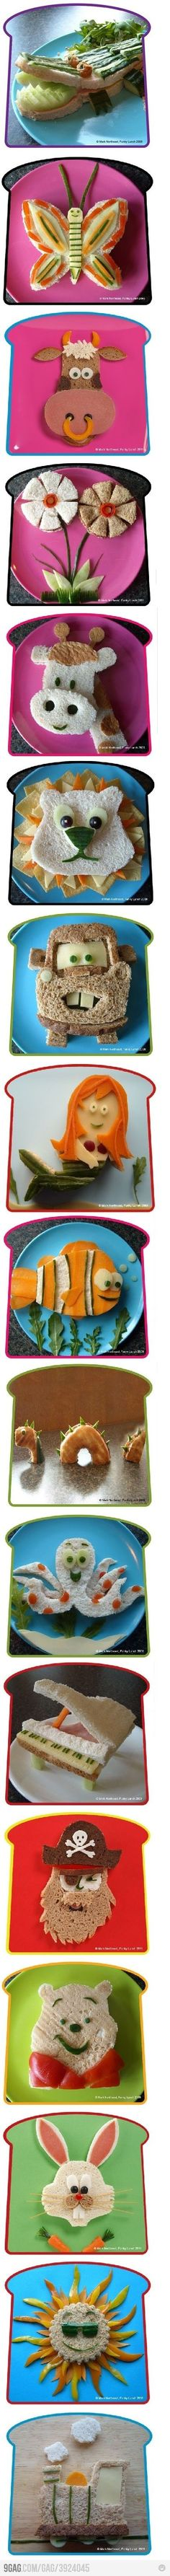 Cool sandwiches